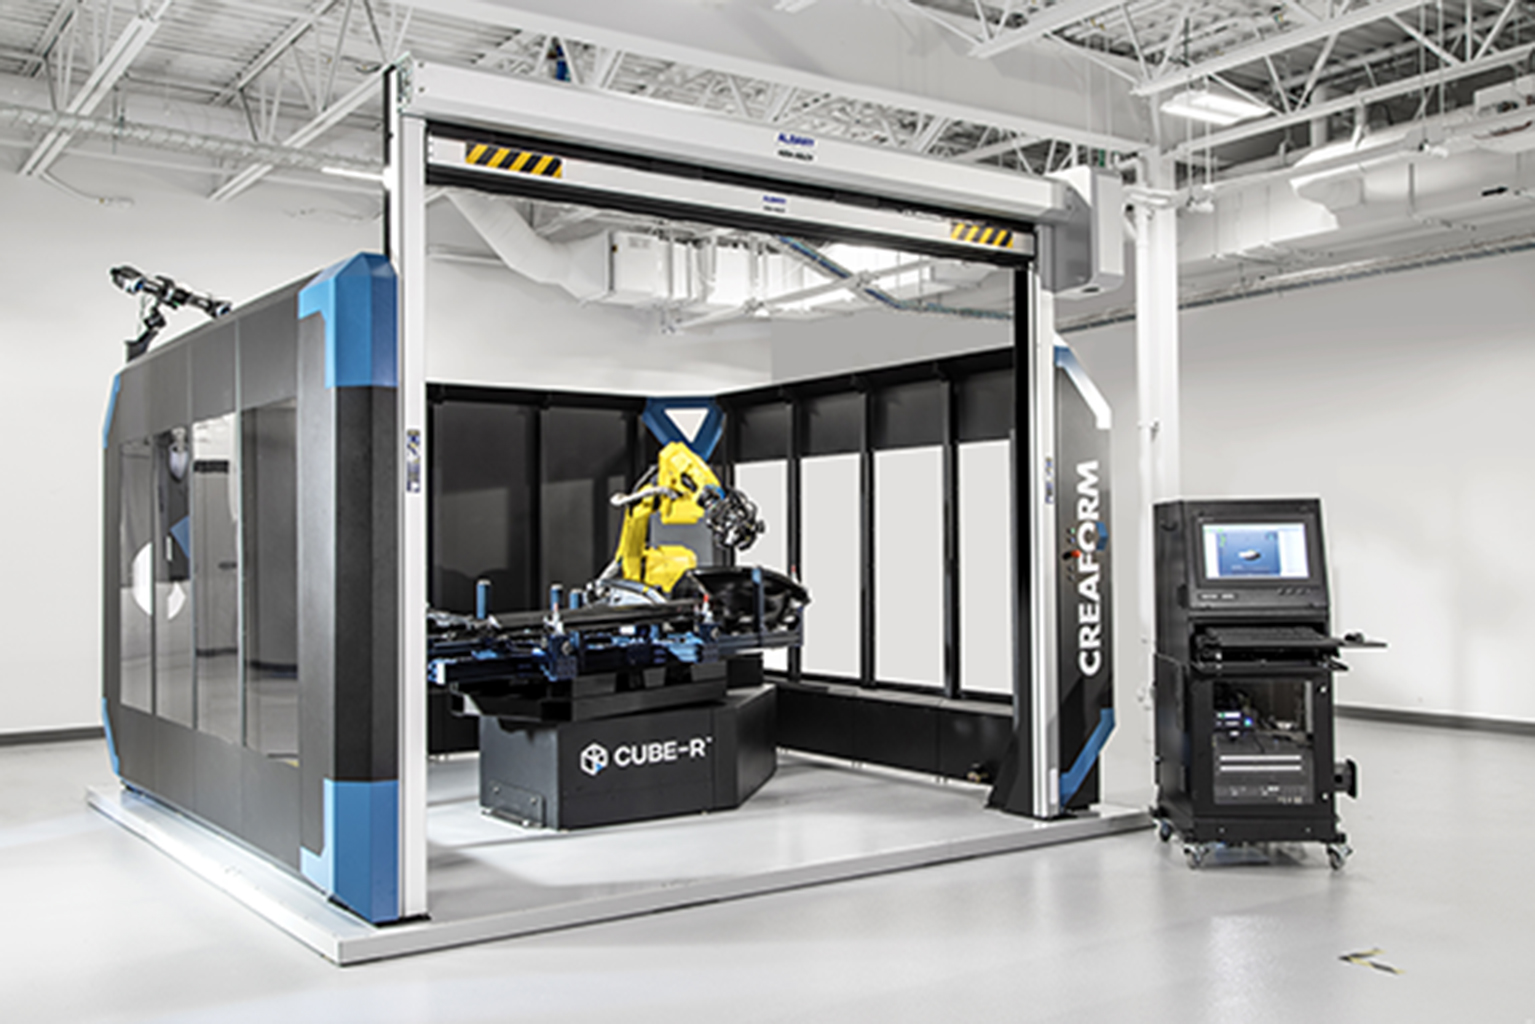 Creaform launches Cube-R, a complete turnkey automated dimensional inspection solution